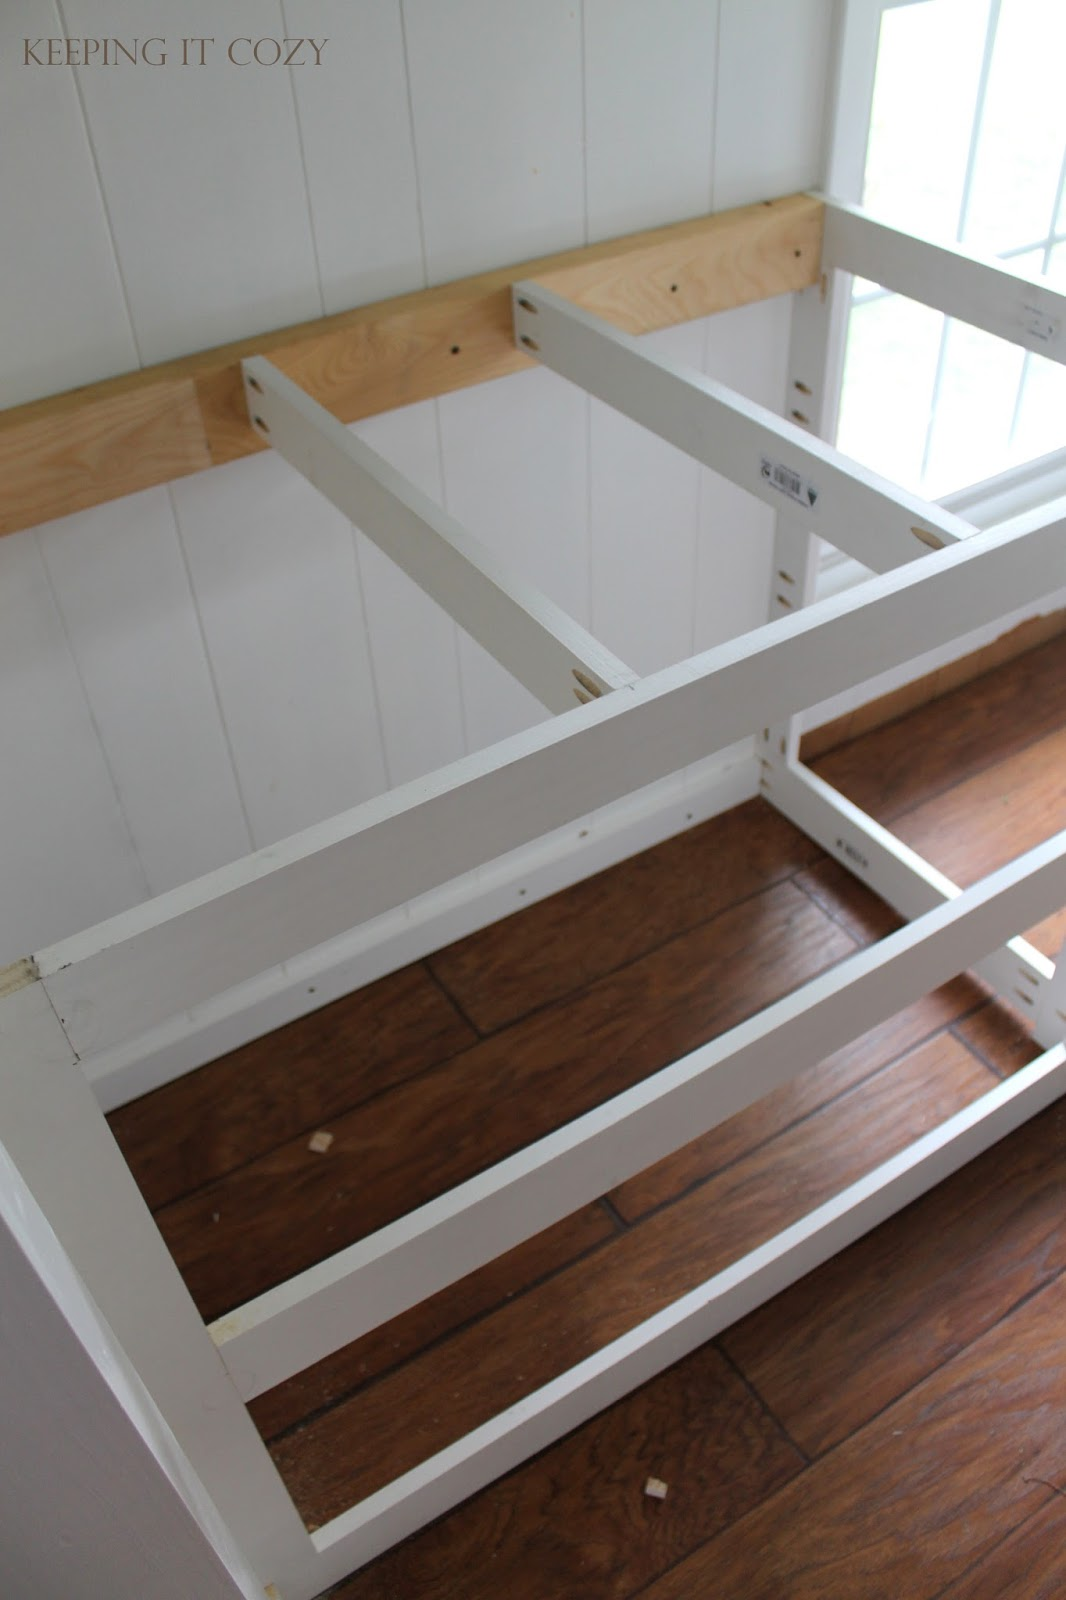 Keeping it cozy kitchen cabinet and countertop update for Building kitchen cabinets with kreg jig